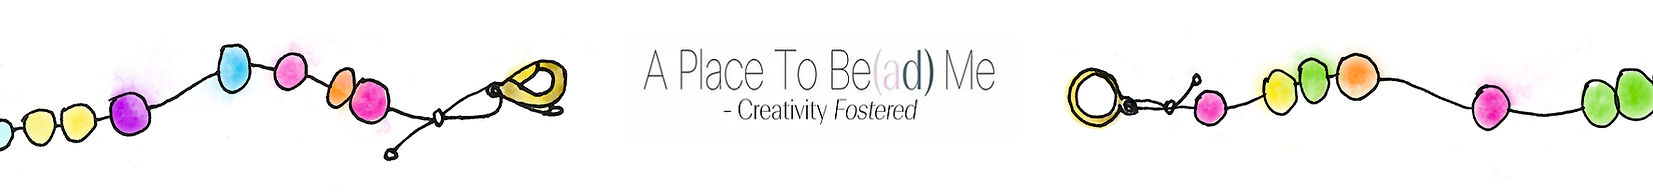 A PLACE TO BEAD ME LOGO